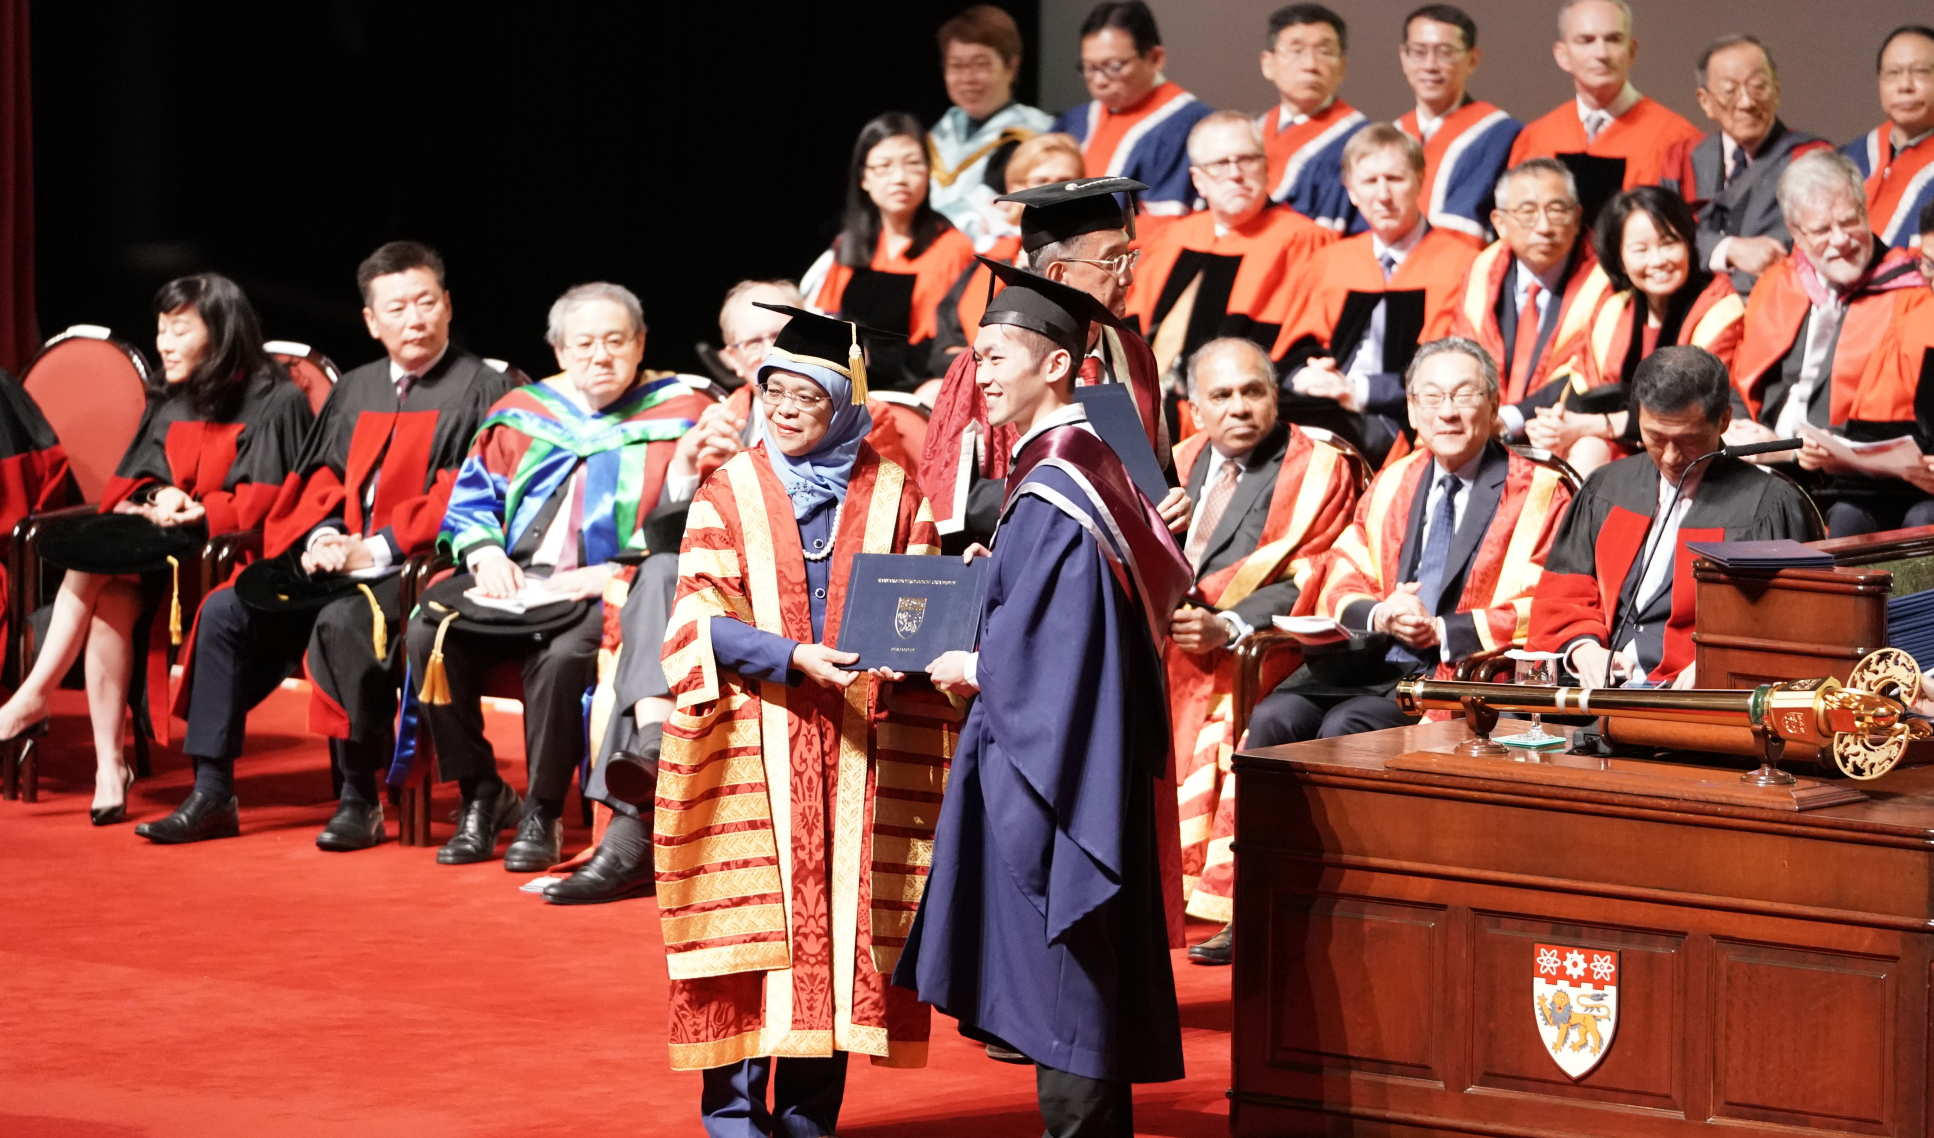 President Yacob confers a degree